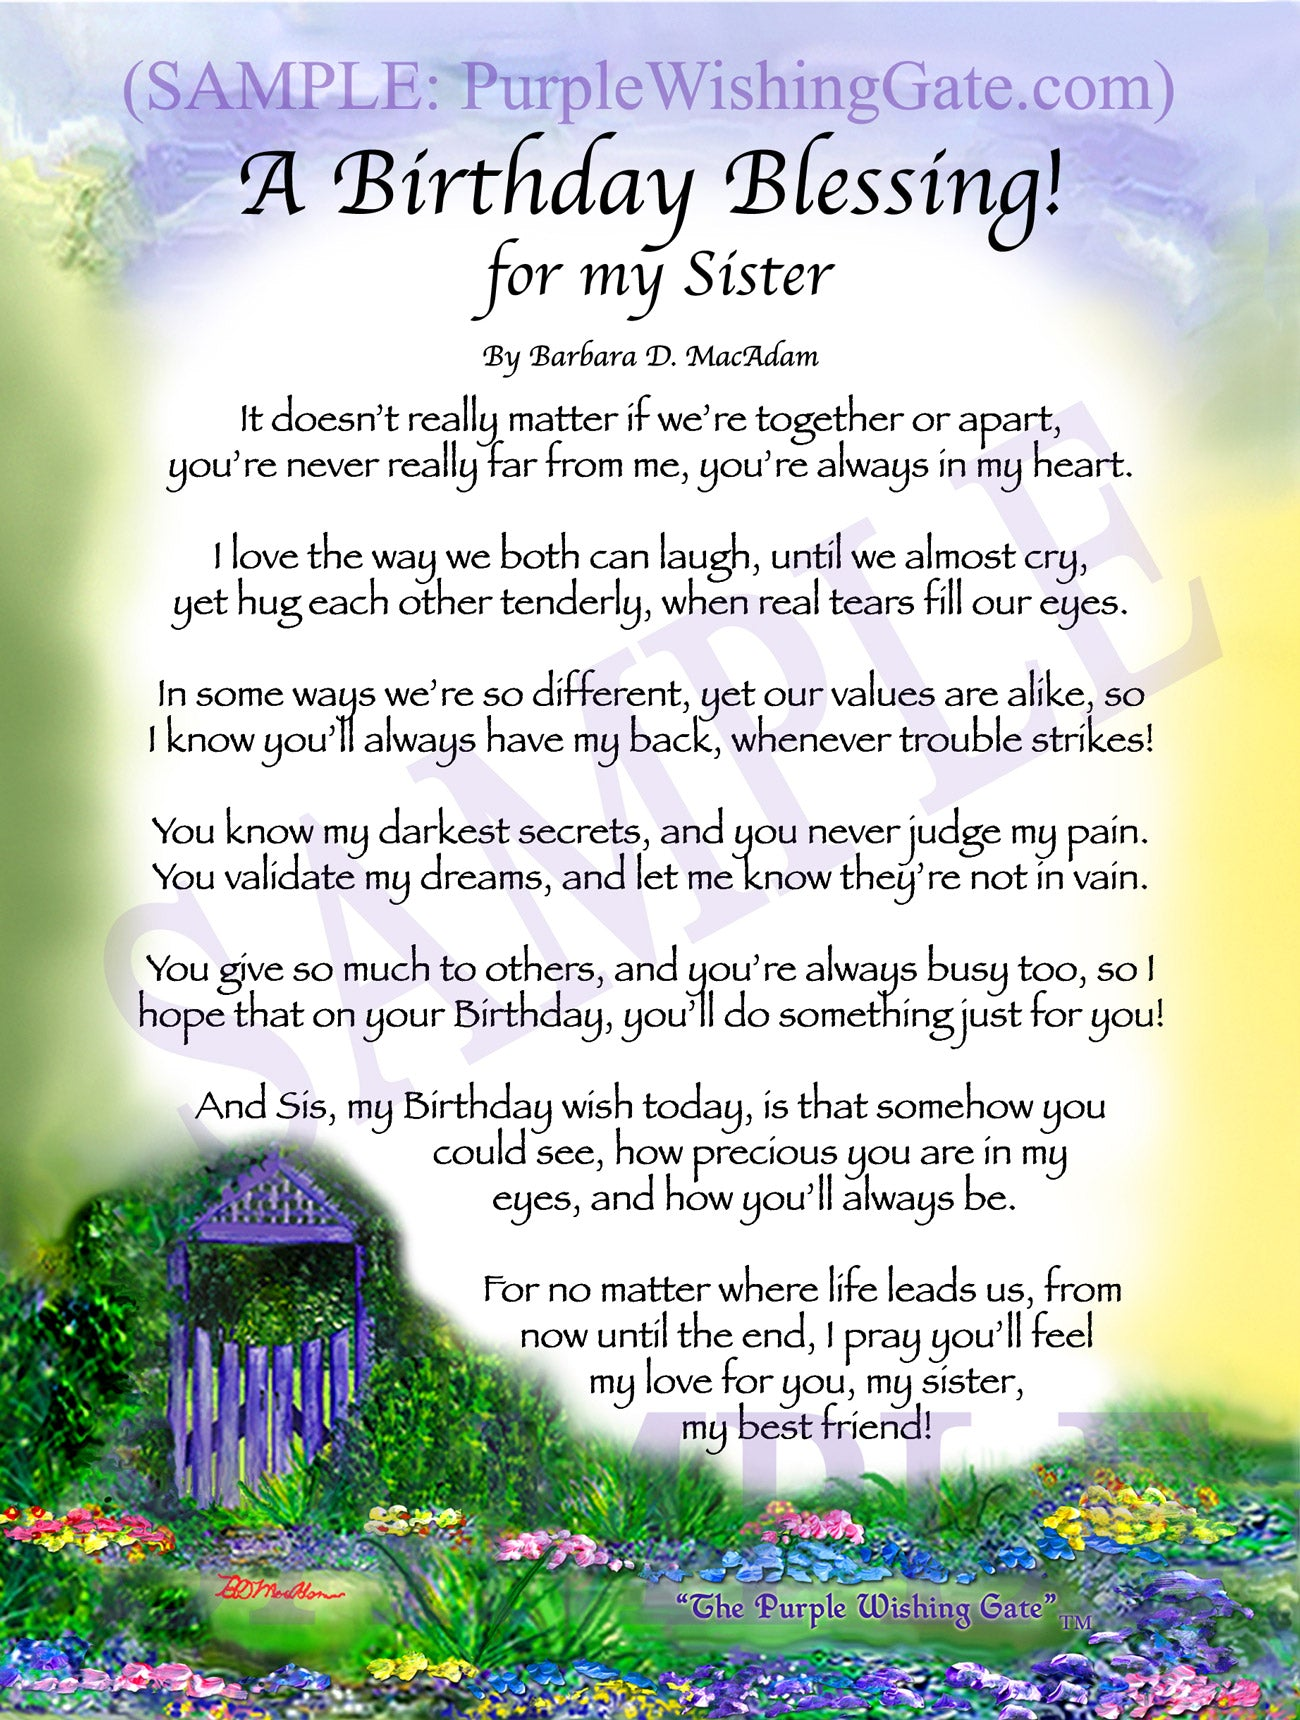 A Birthday Blessing For My Sister